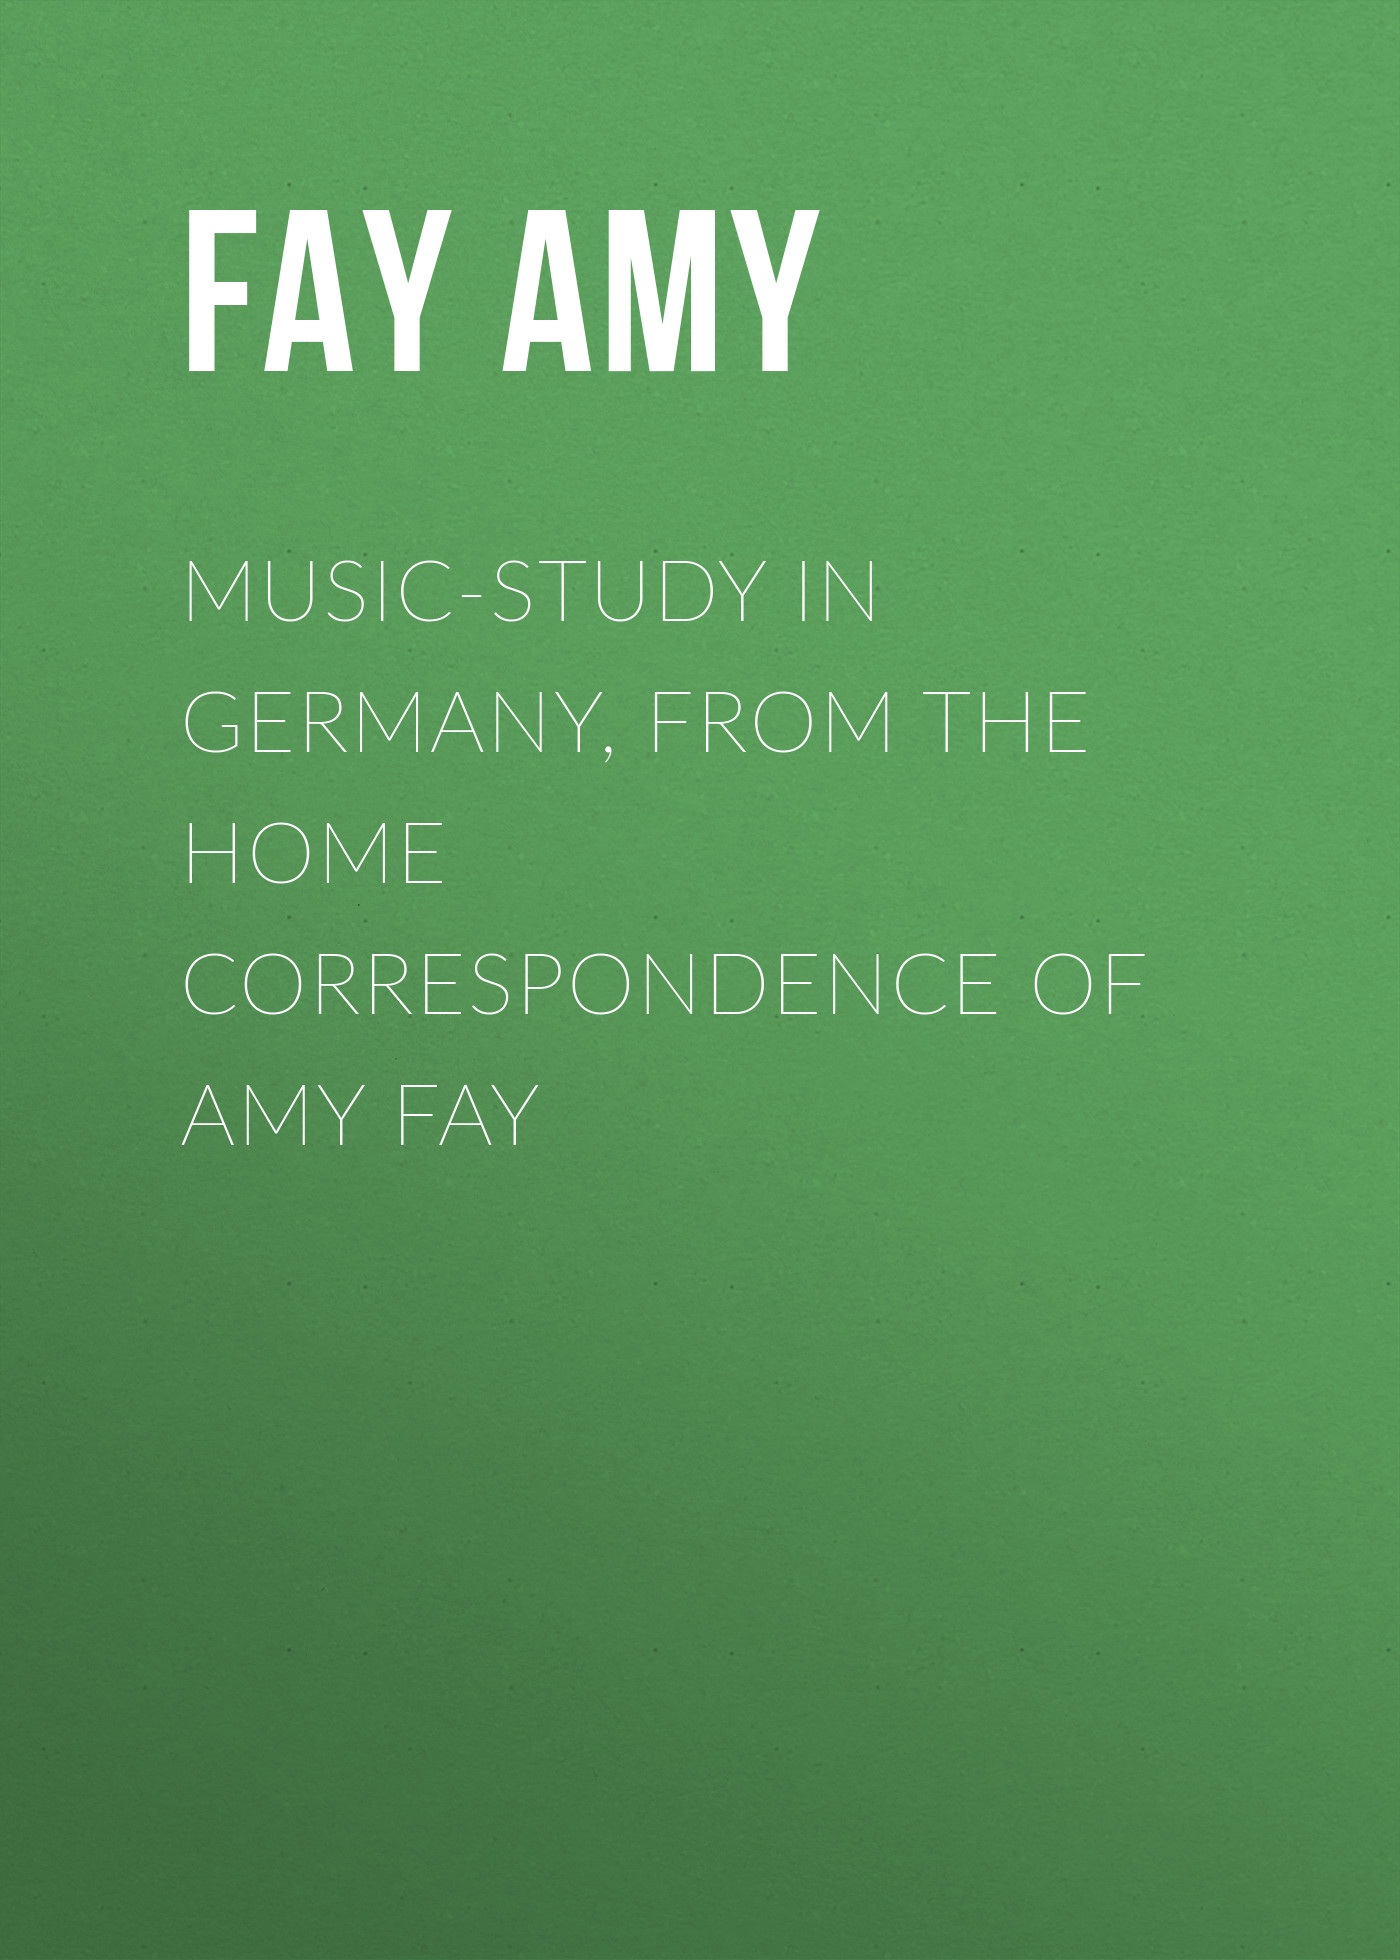 лучшая цена Fay Amy Music-Study in Germany, from the Home Correspondence of Amy Fay